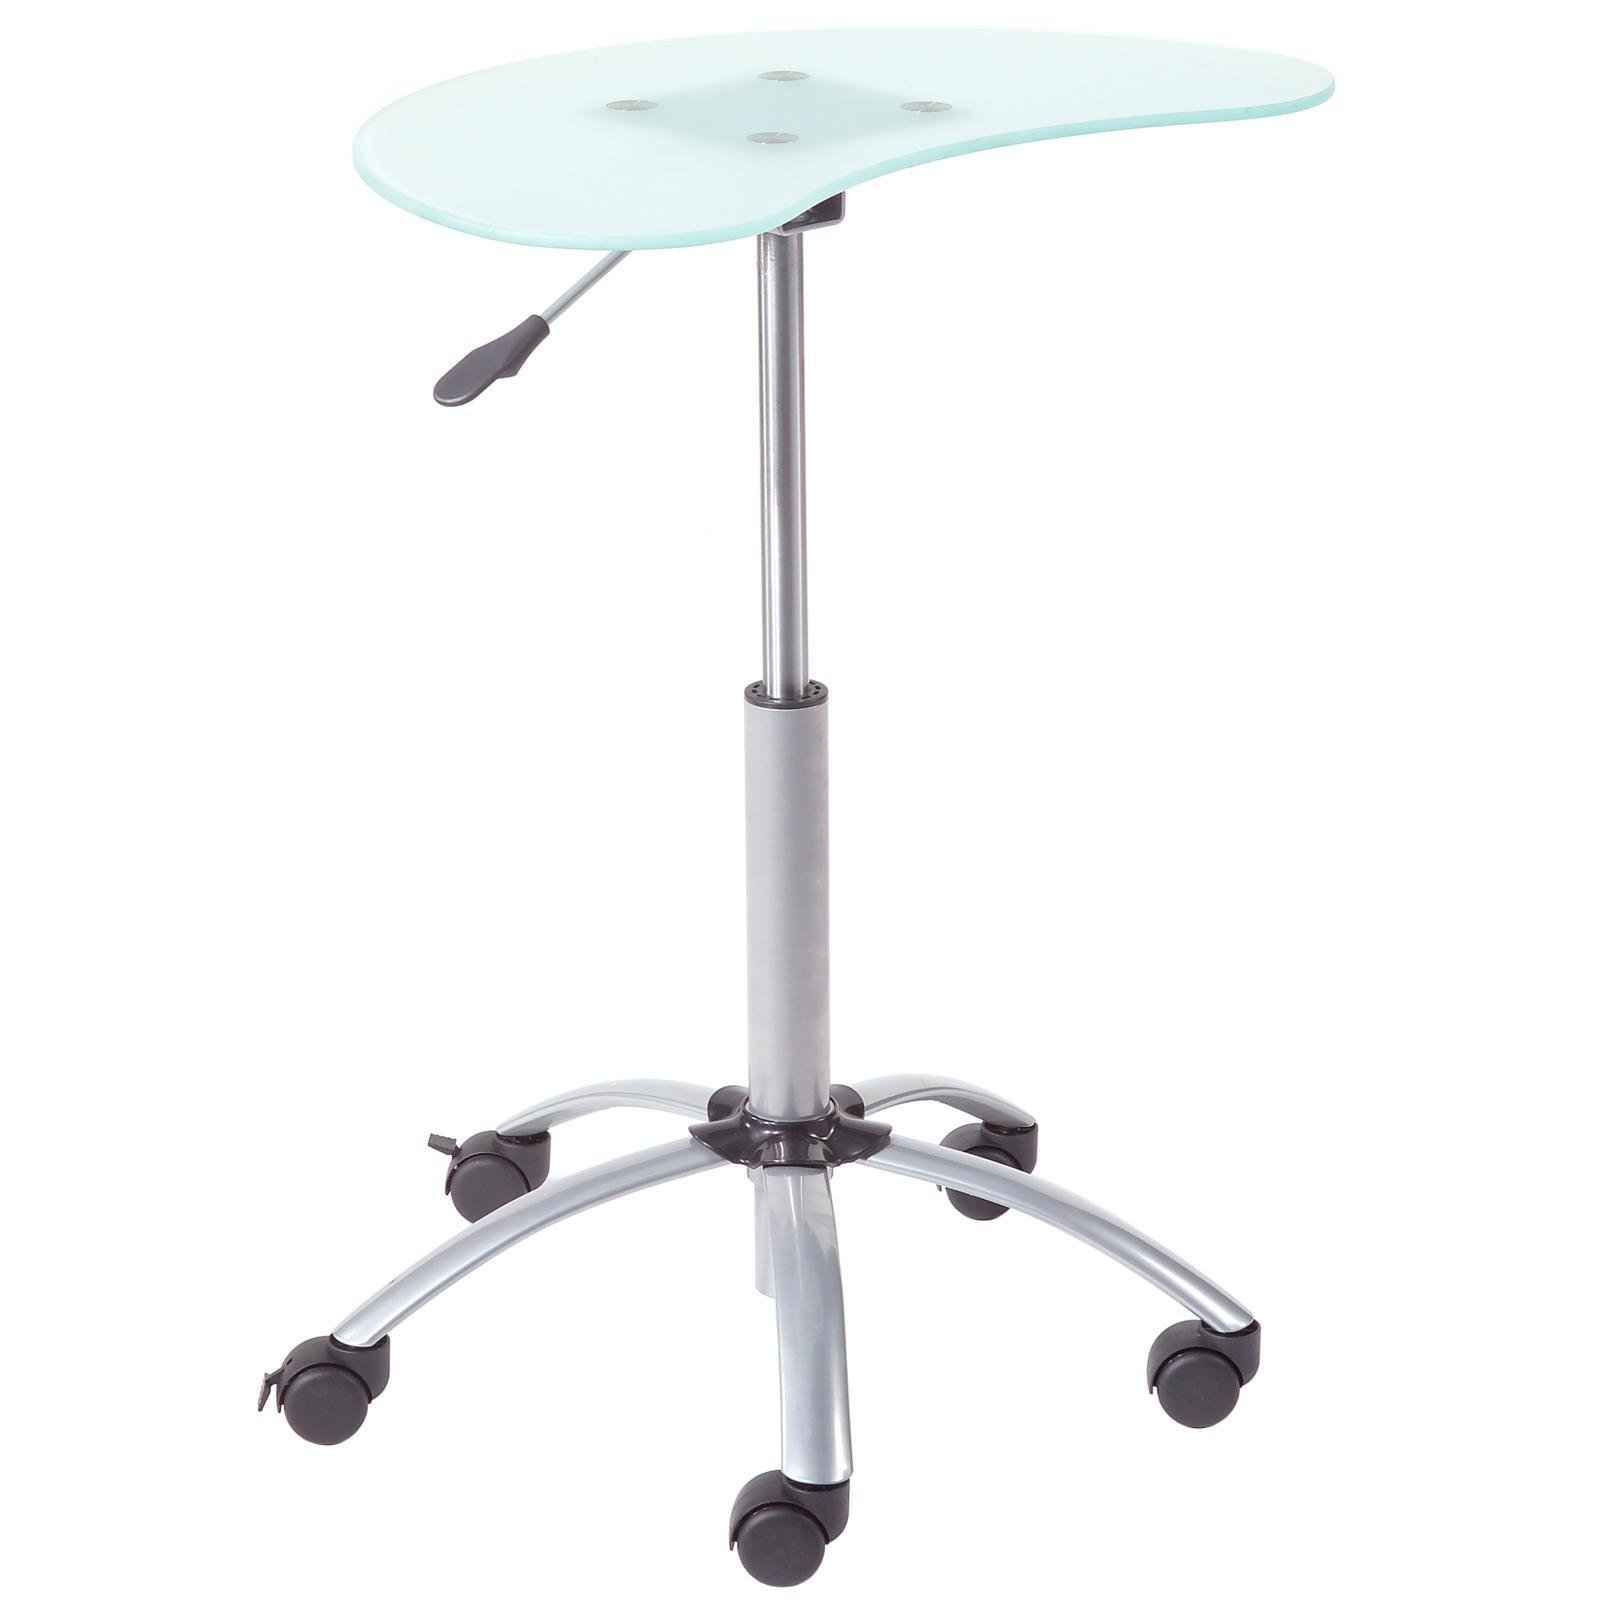 Euro Style Malcom Glass Top Laptop Stand With Wheels Laptop Stand Laptop Desk Stand Computer Stand